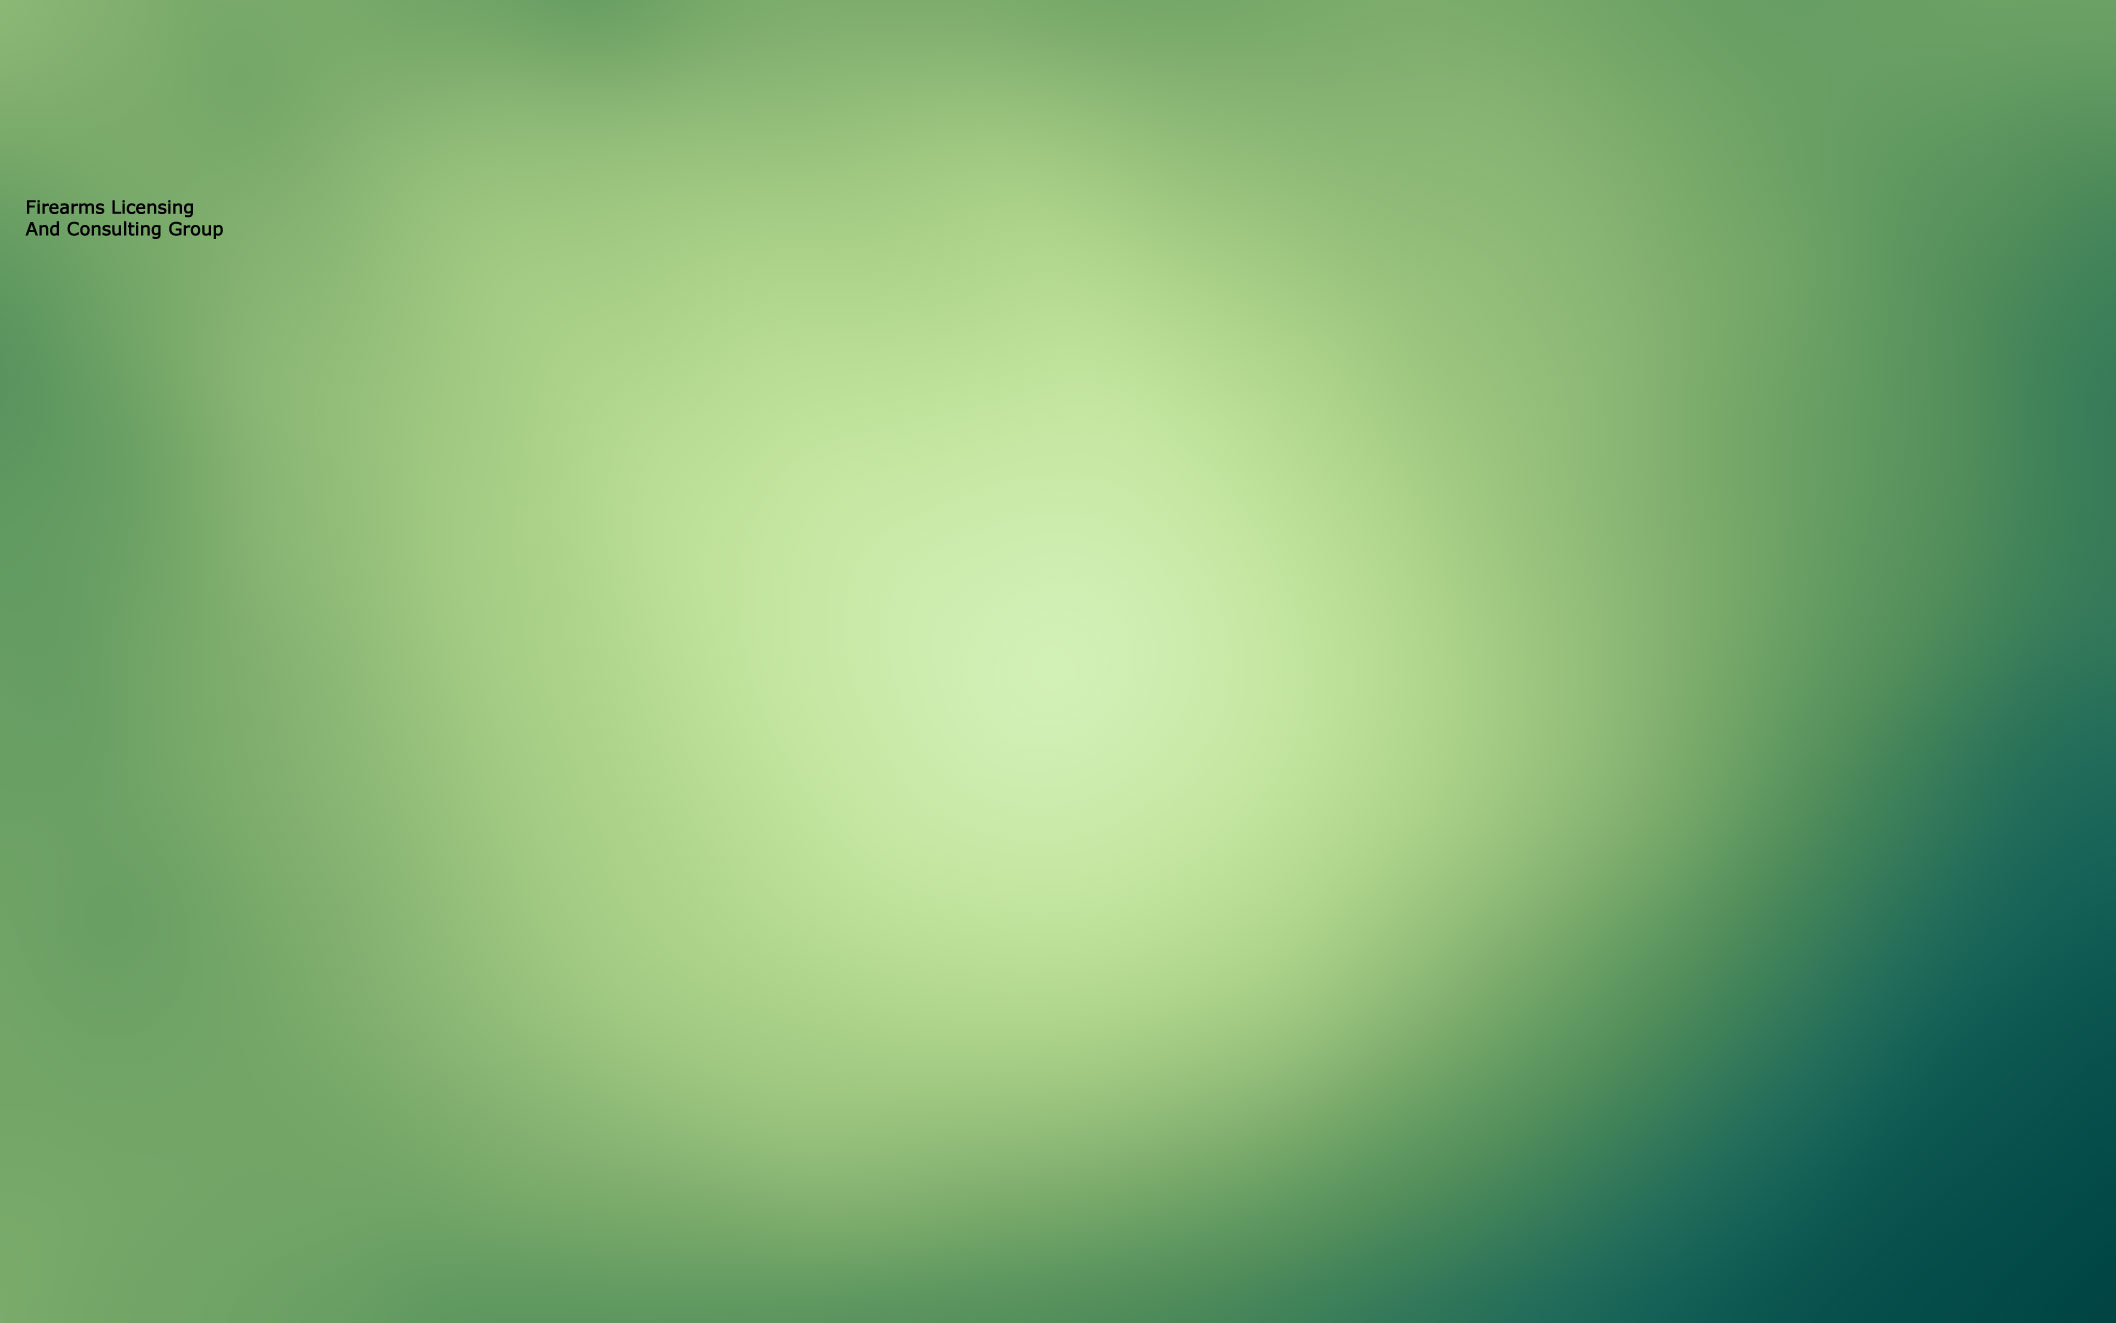 HD-Green-Background-July-23-2014-test-12.jpg